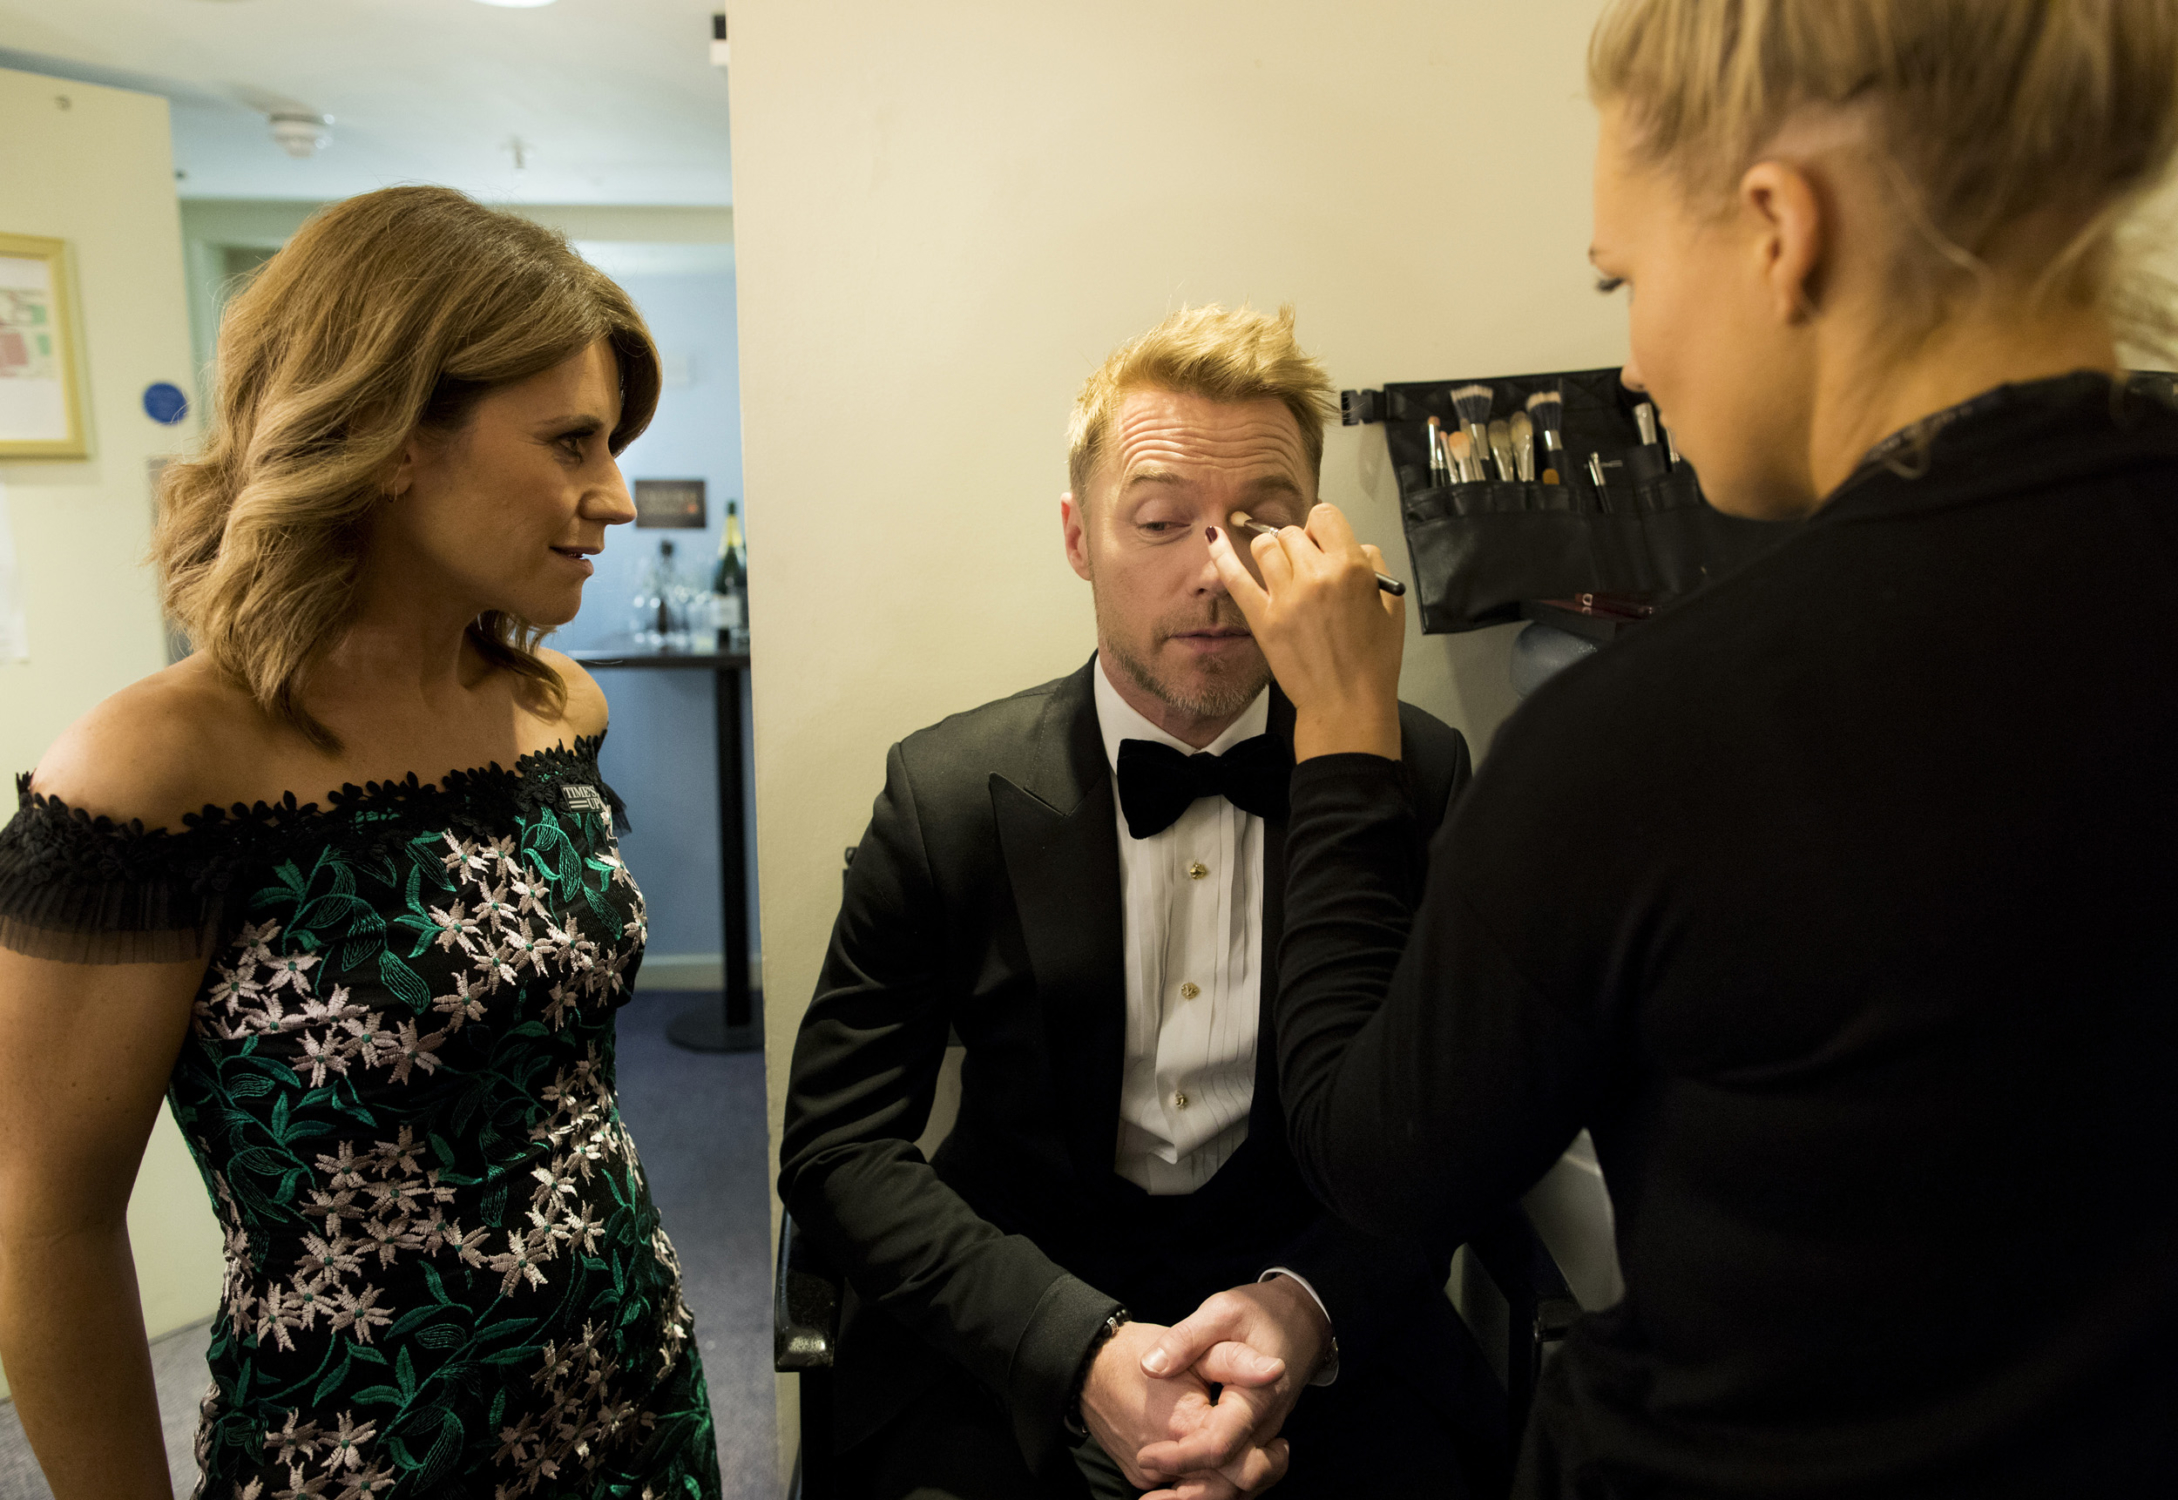 Presenters Harriet Scott and Ronan Keating have their make-up adjusted before taking to the stage. Photograph by David Levene, 2018.